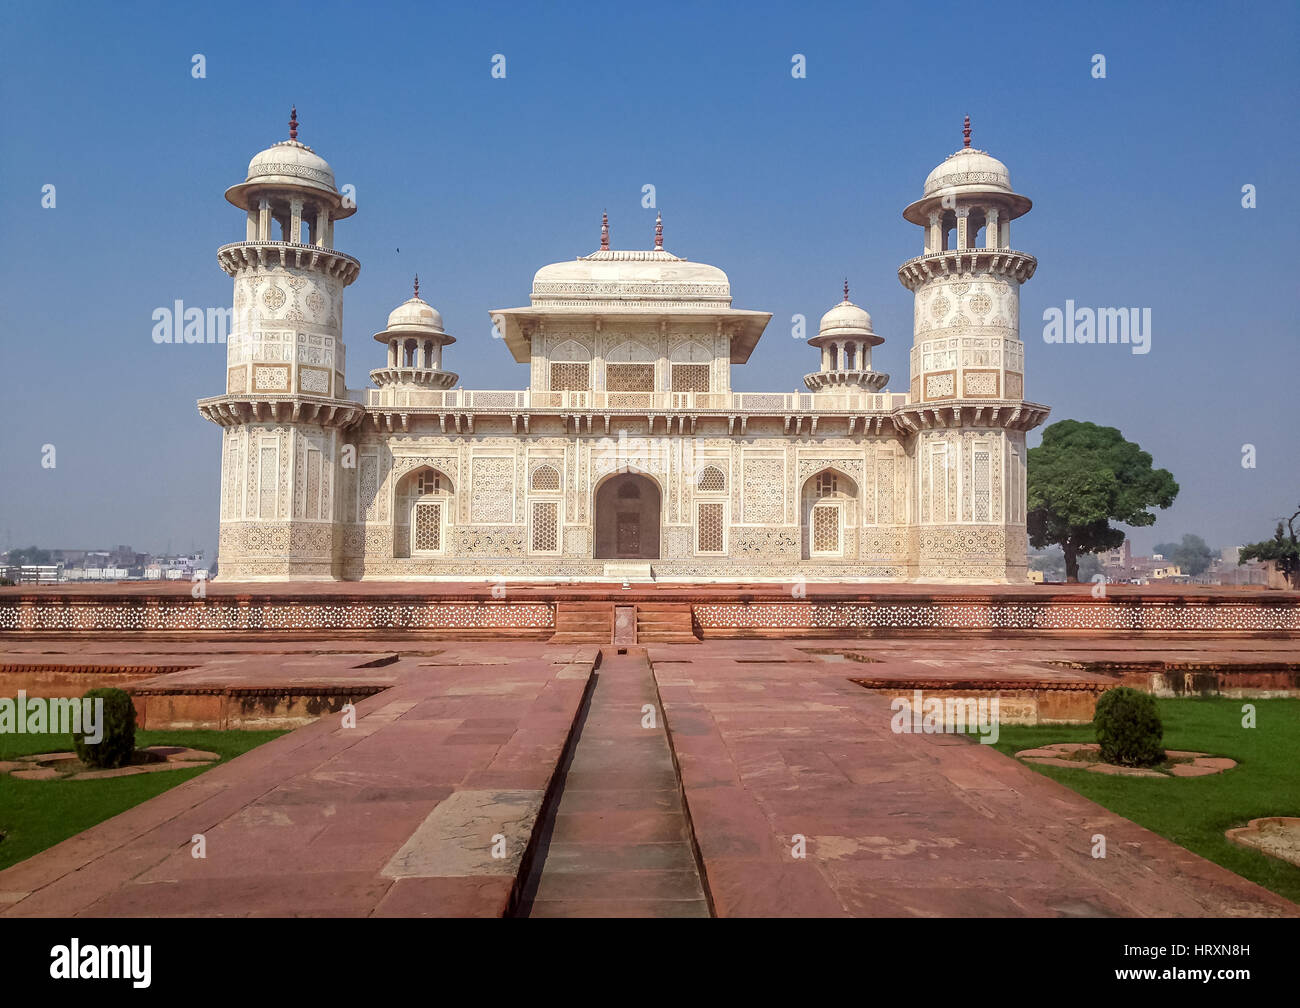 Itmad-Ud-Daulah's Tomb - Agra, India Stock Photo